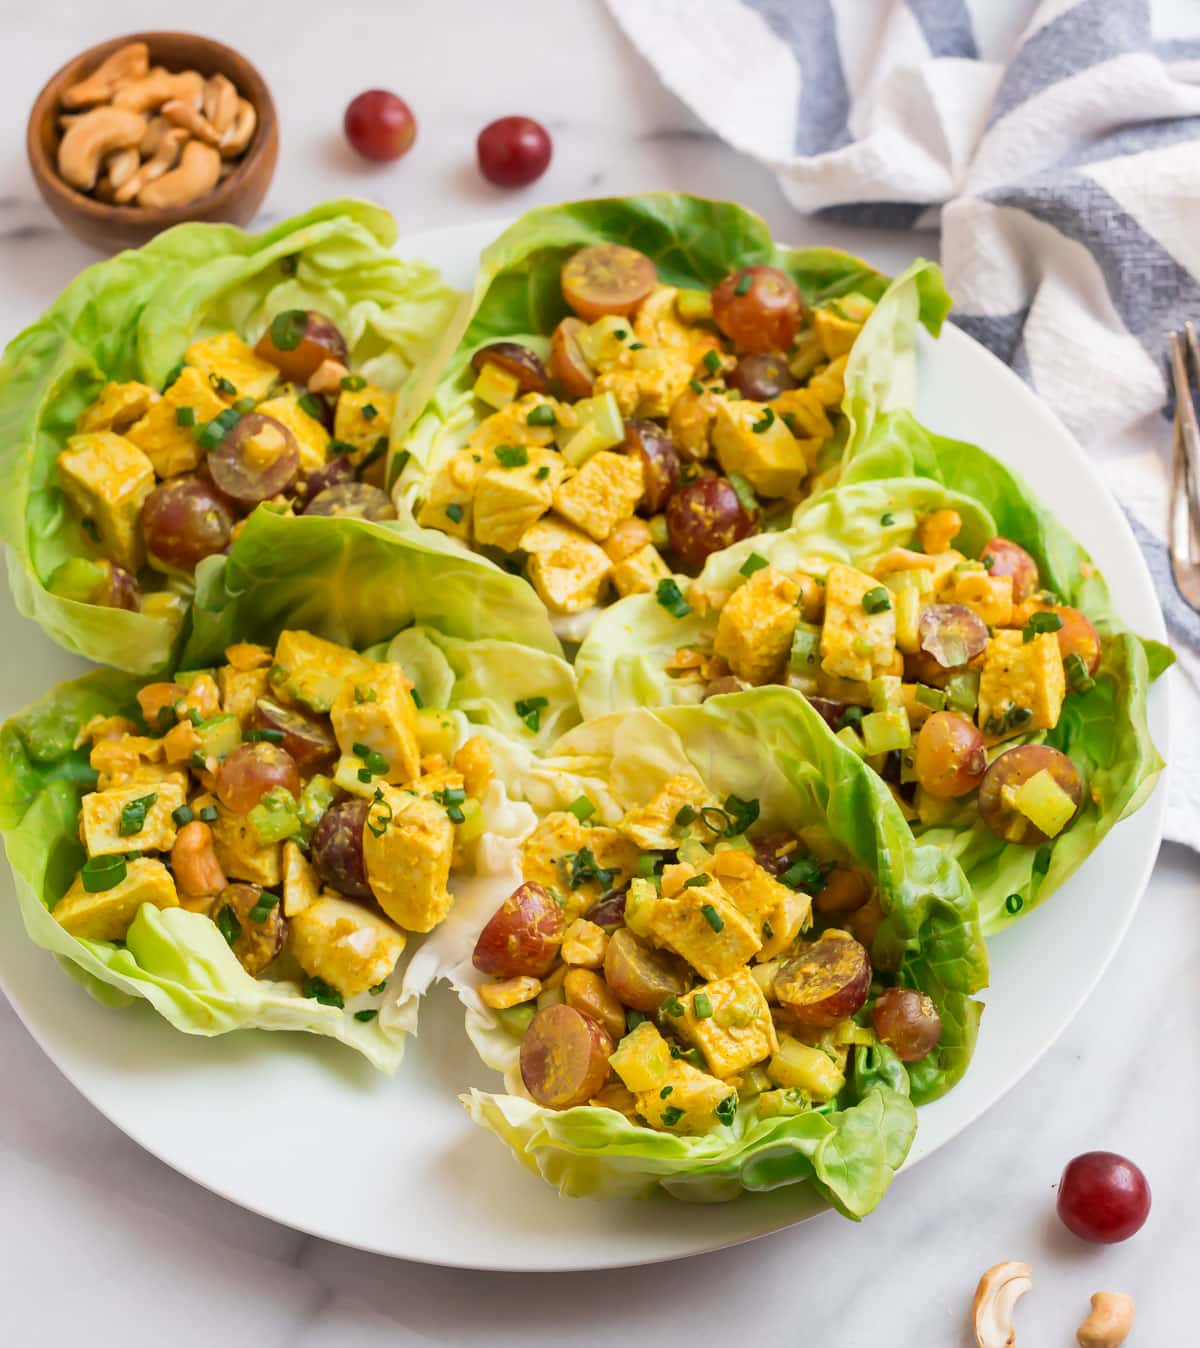 Curry chicken salad served in lettuce cups